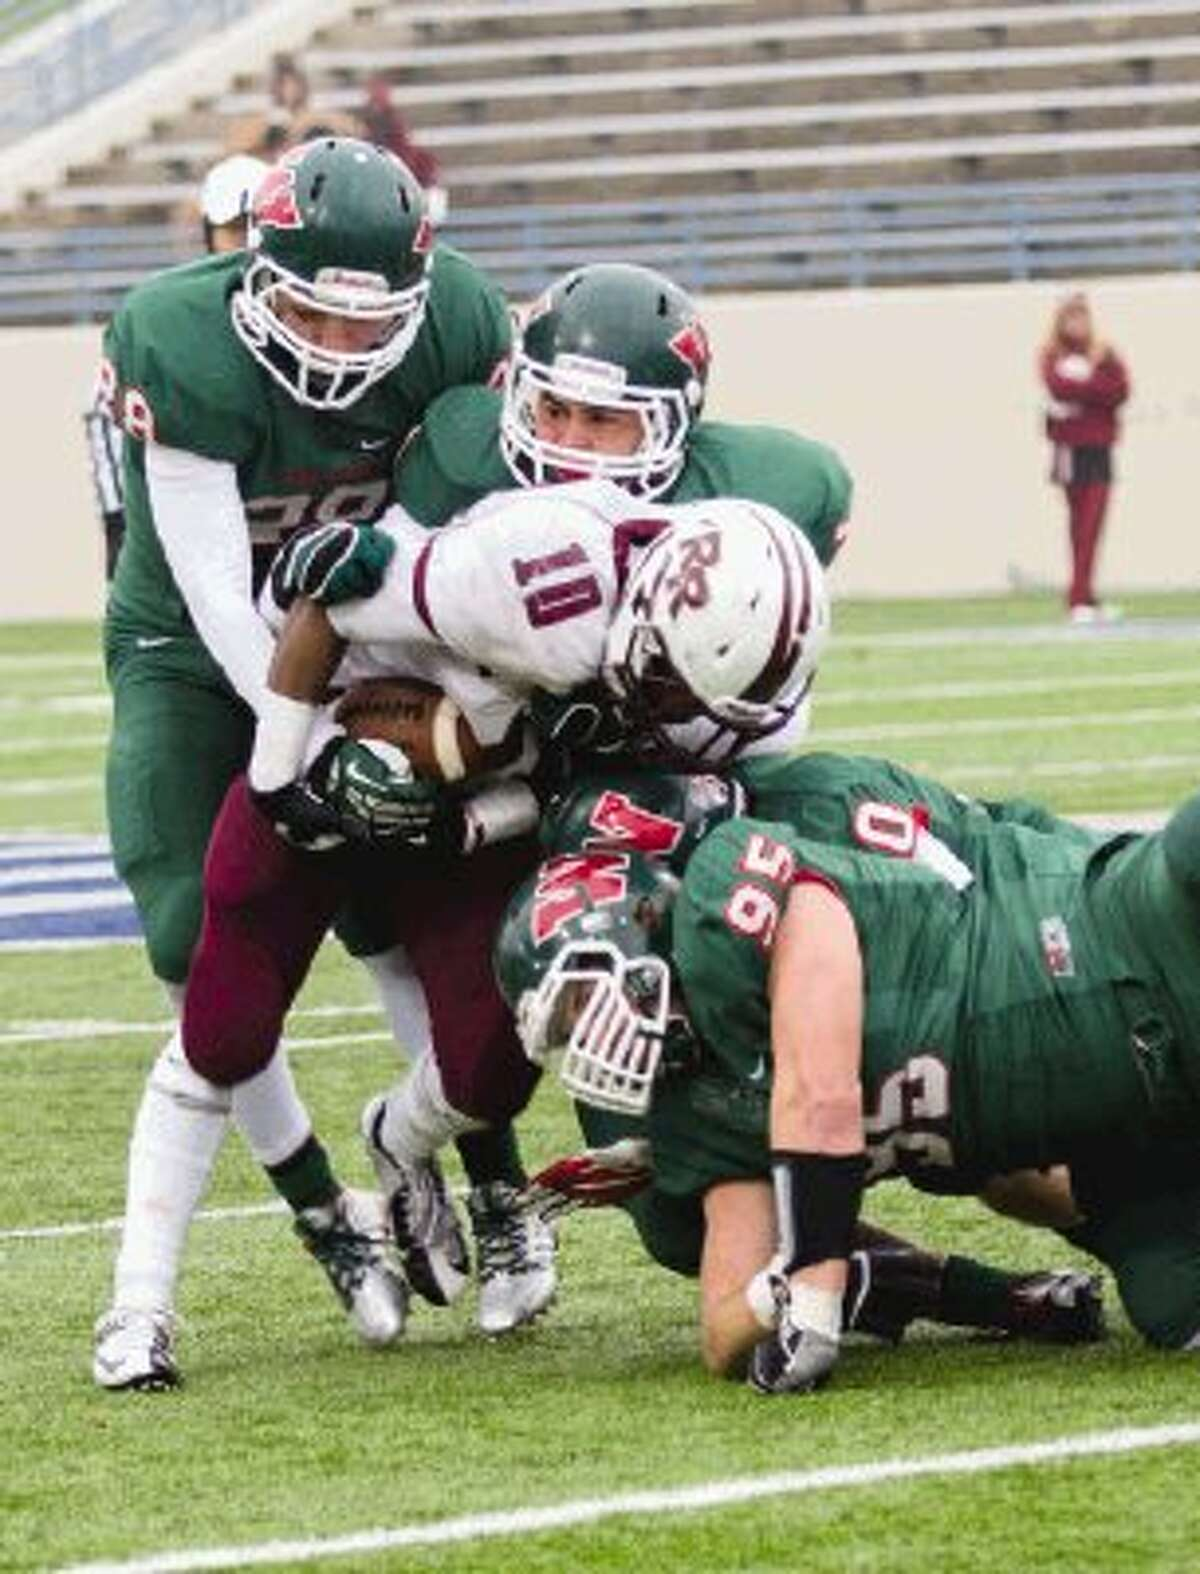 Zak Krolczyk (95) and The Woodlands defense will have its hands full with Allen quarterback Kyler Murray on Saturday.